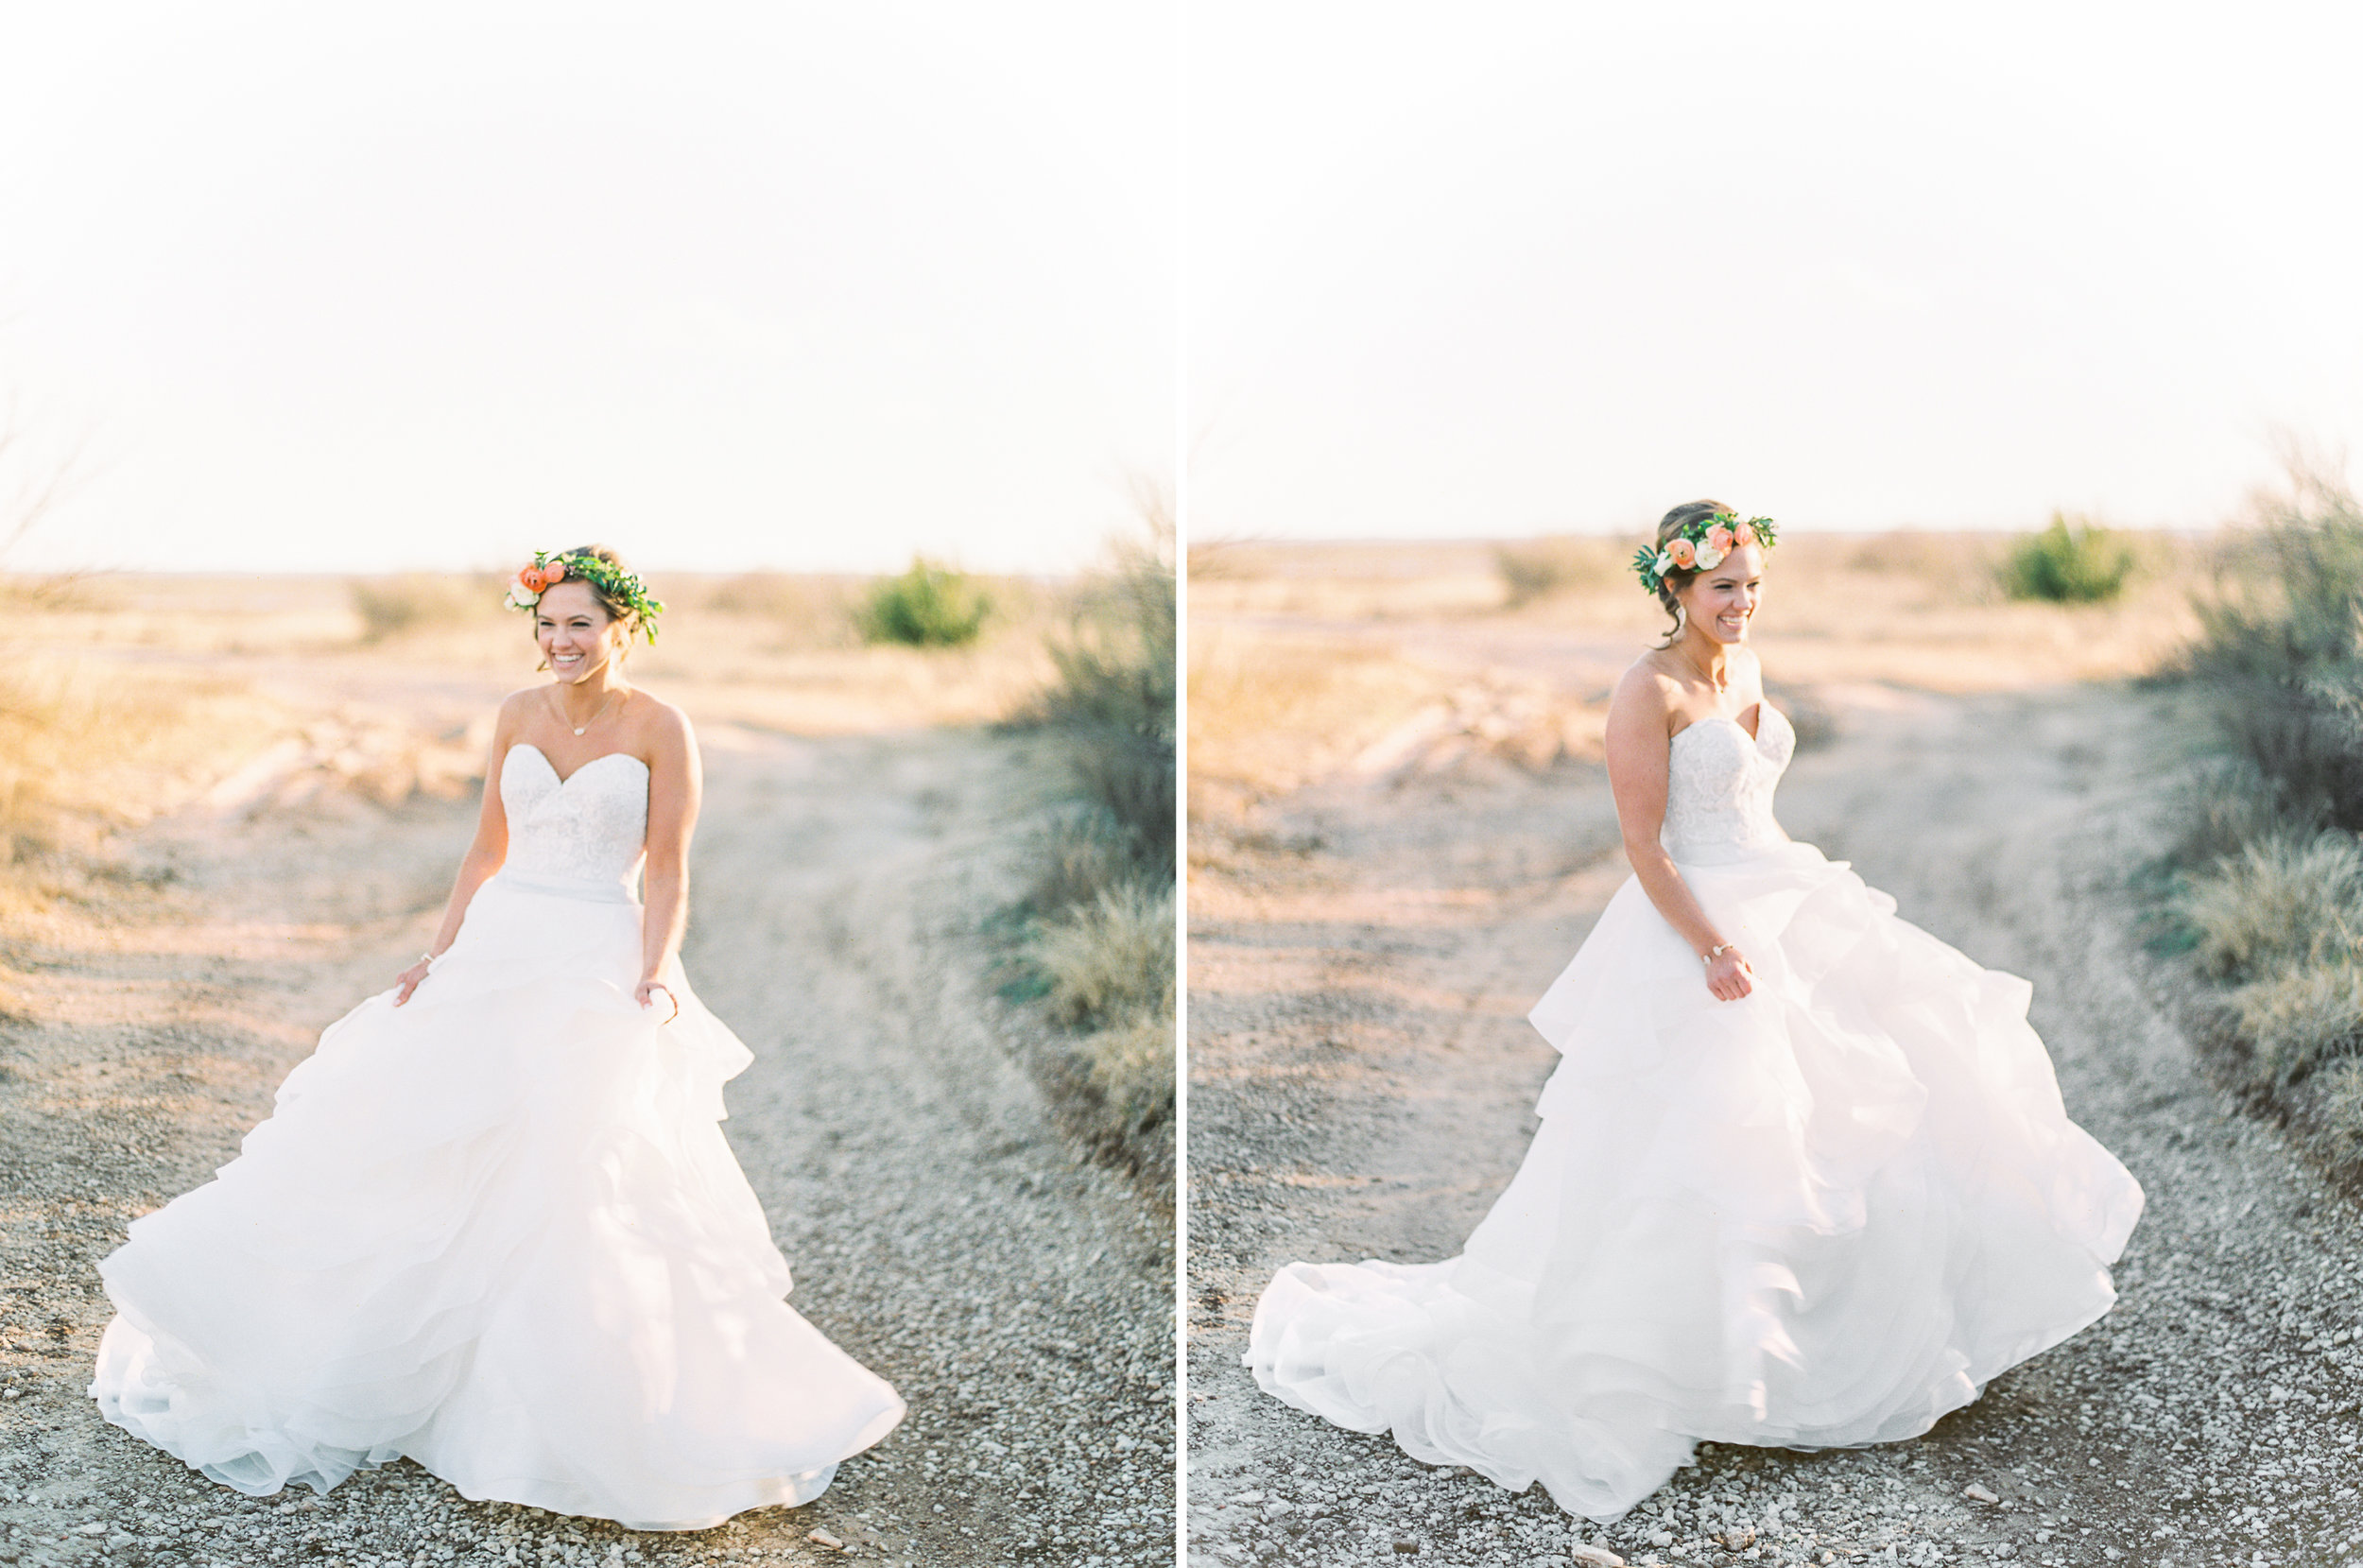 Chelsea's Spring Bridal Session | Spring Wedding Inspiration | Texas Film Wedding Photographer | britnidean.com